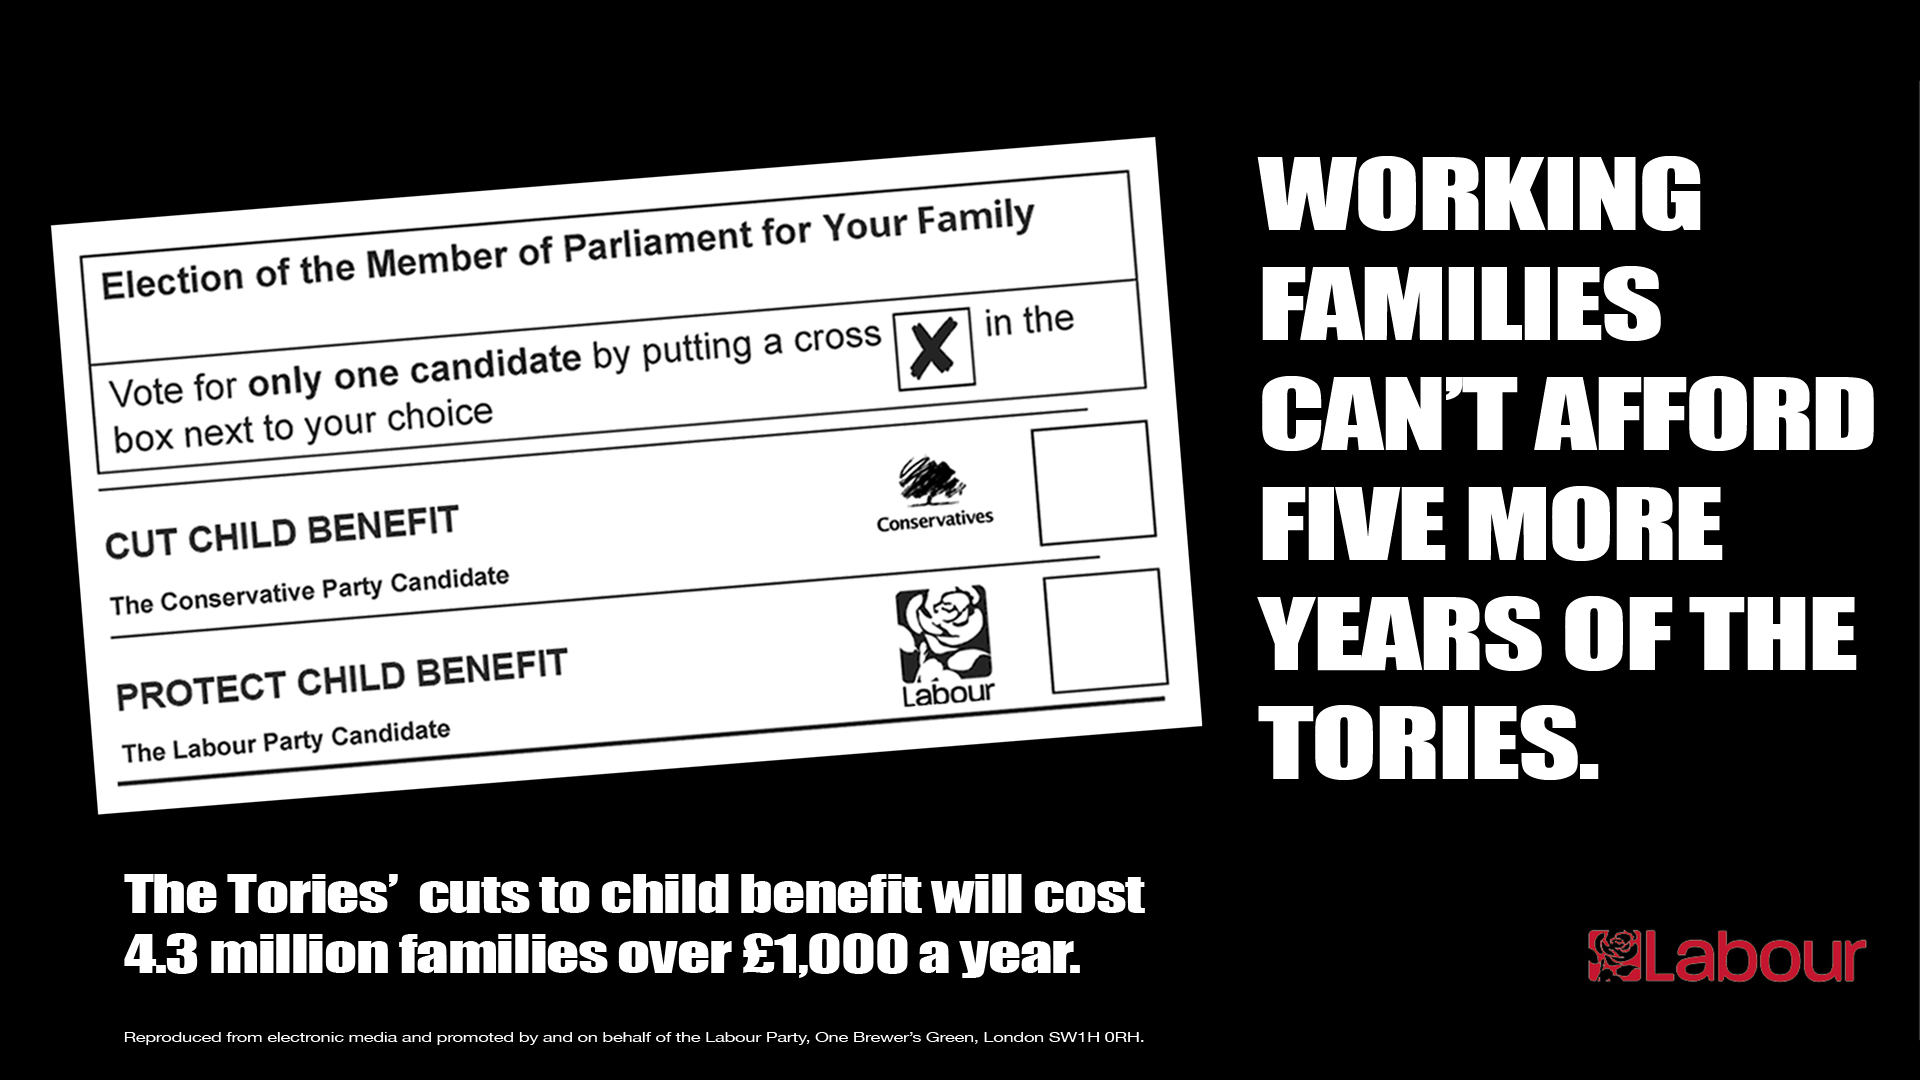 Child_Benefit_on_the_ballot_paper.jpg